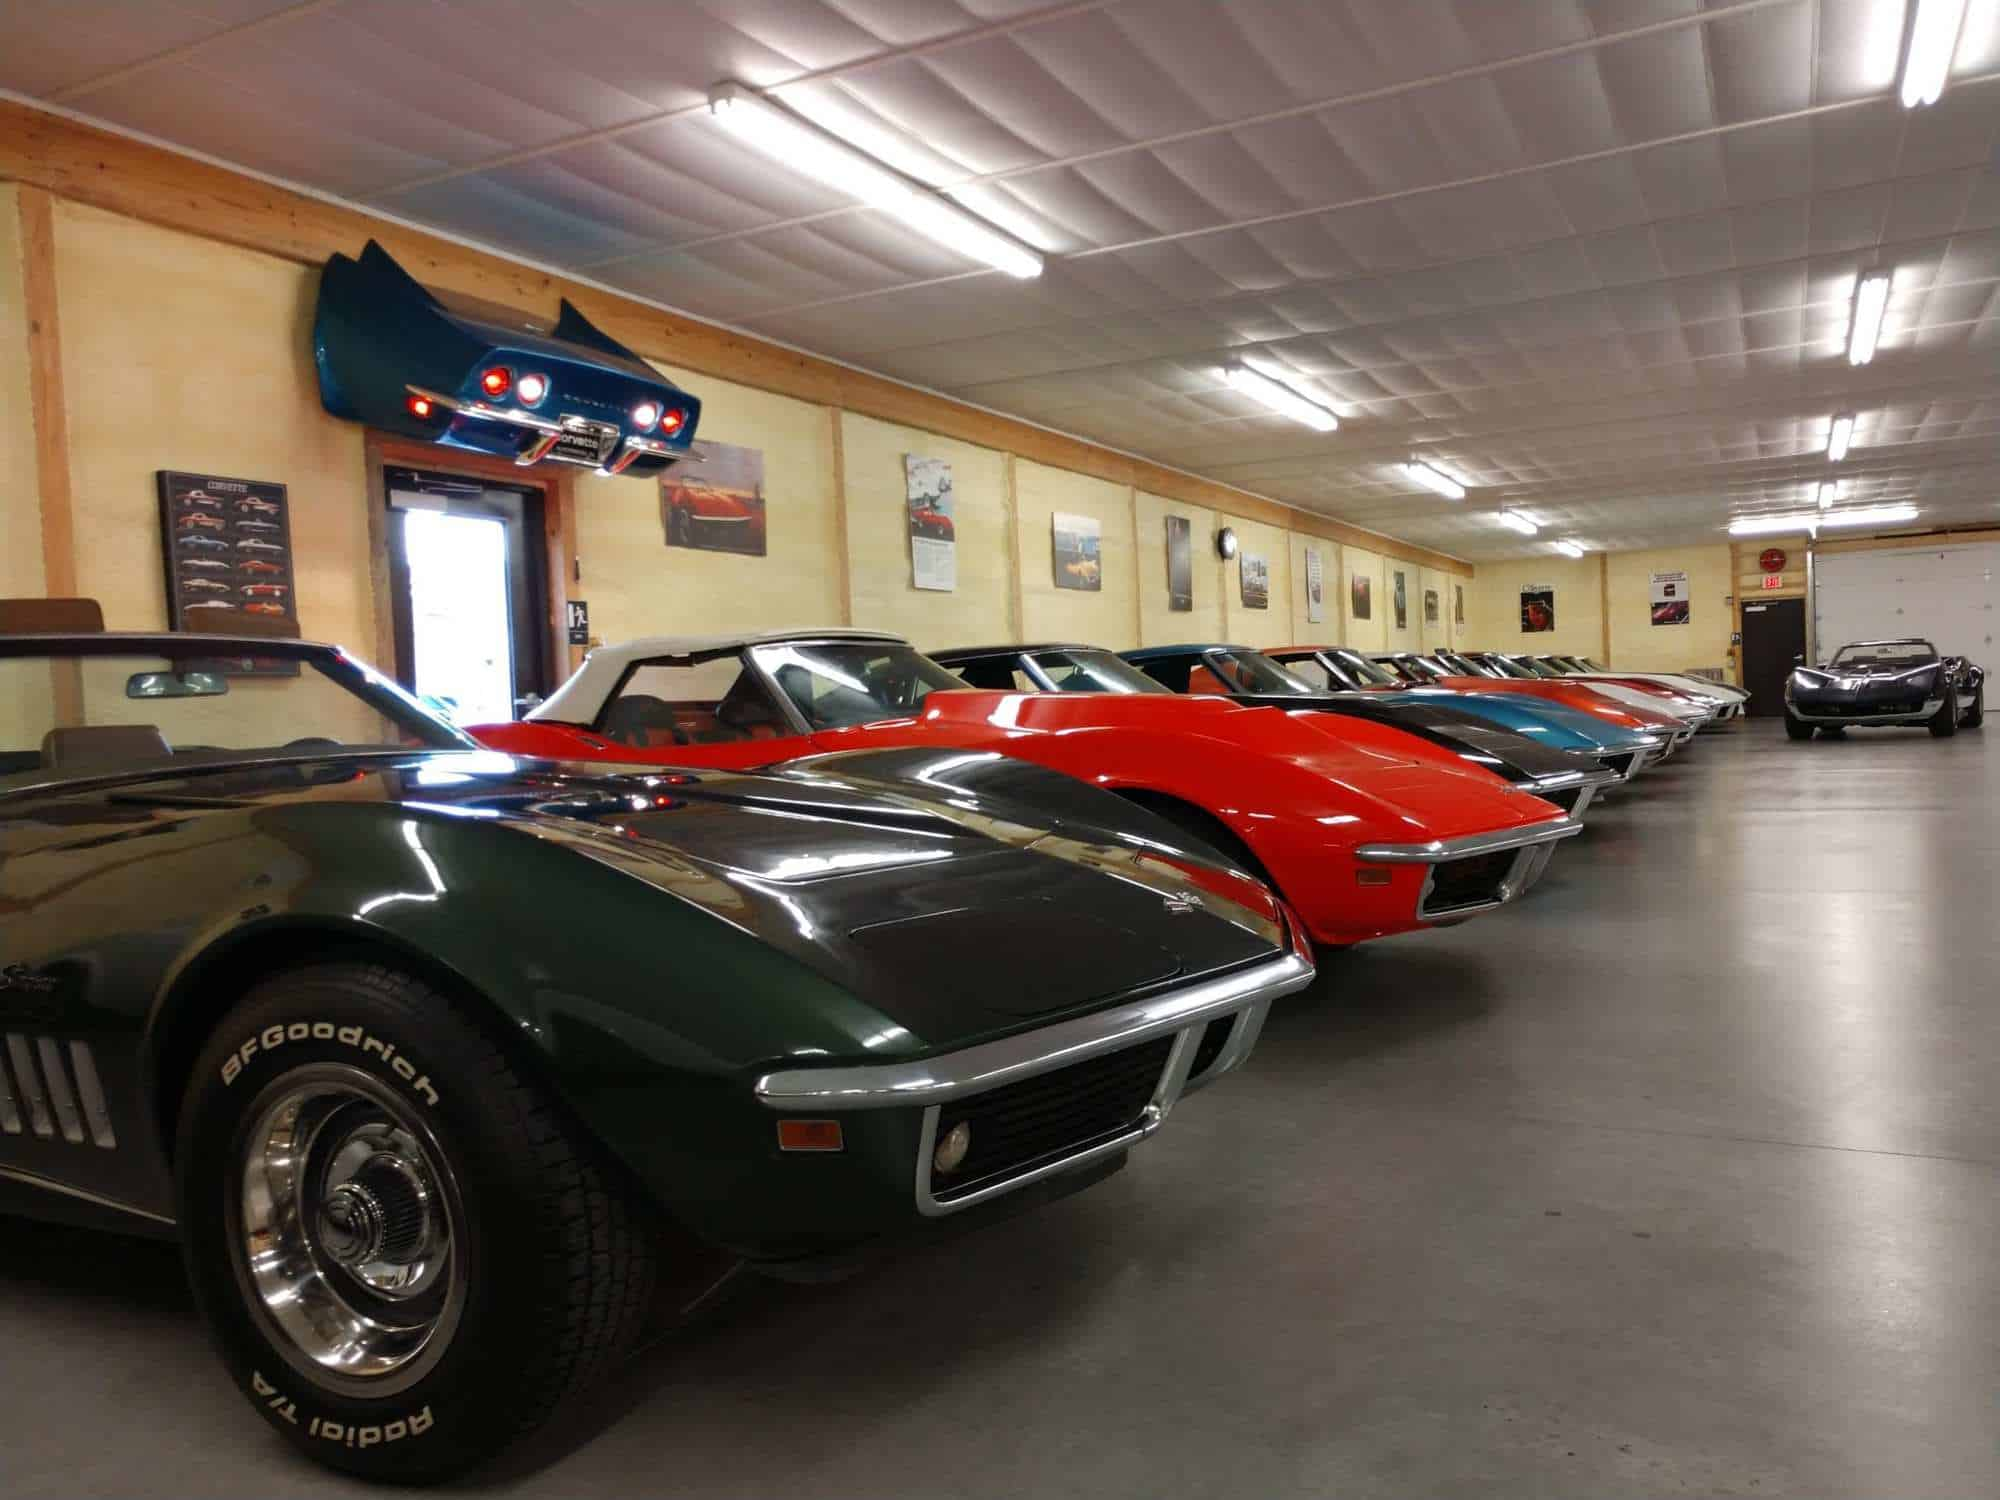 Hobby Car Corvettes Showroom Floor